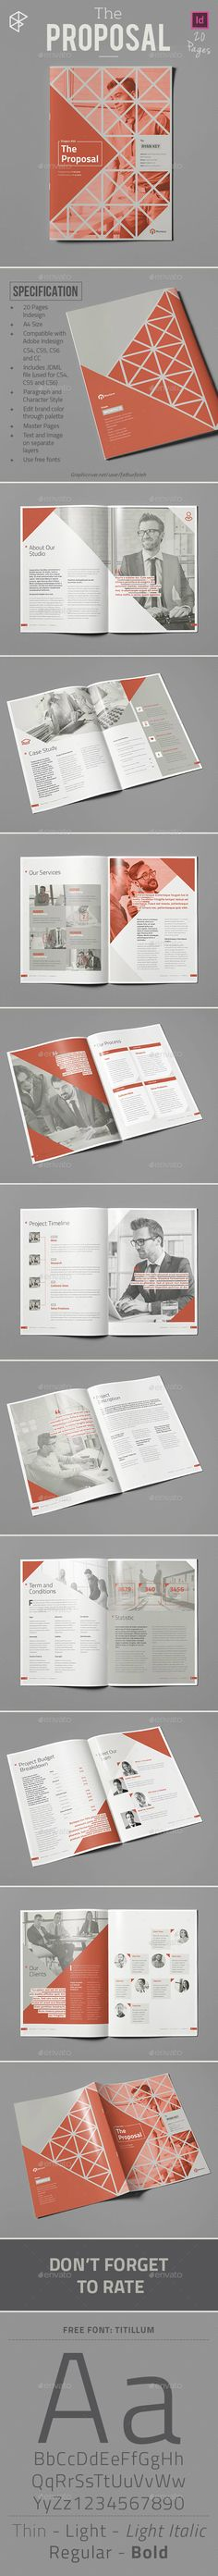 construction proposal templates%0A The Proposal Template InDesign INDD  Download here  http   graphicriver net